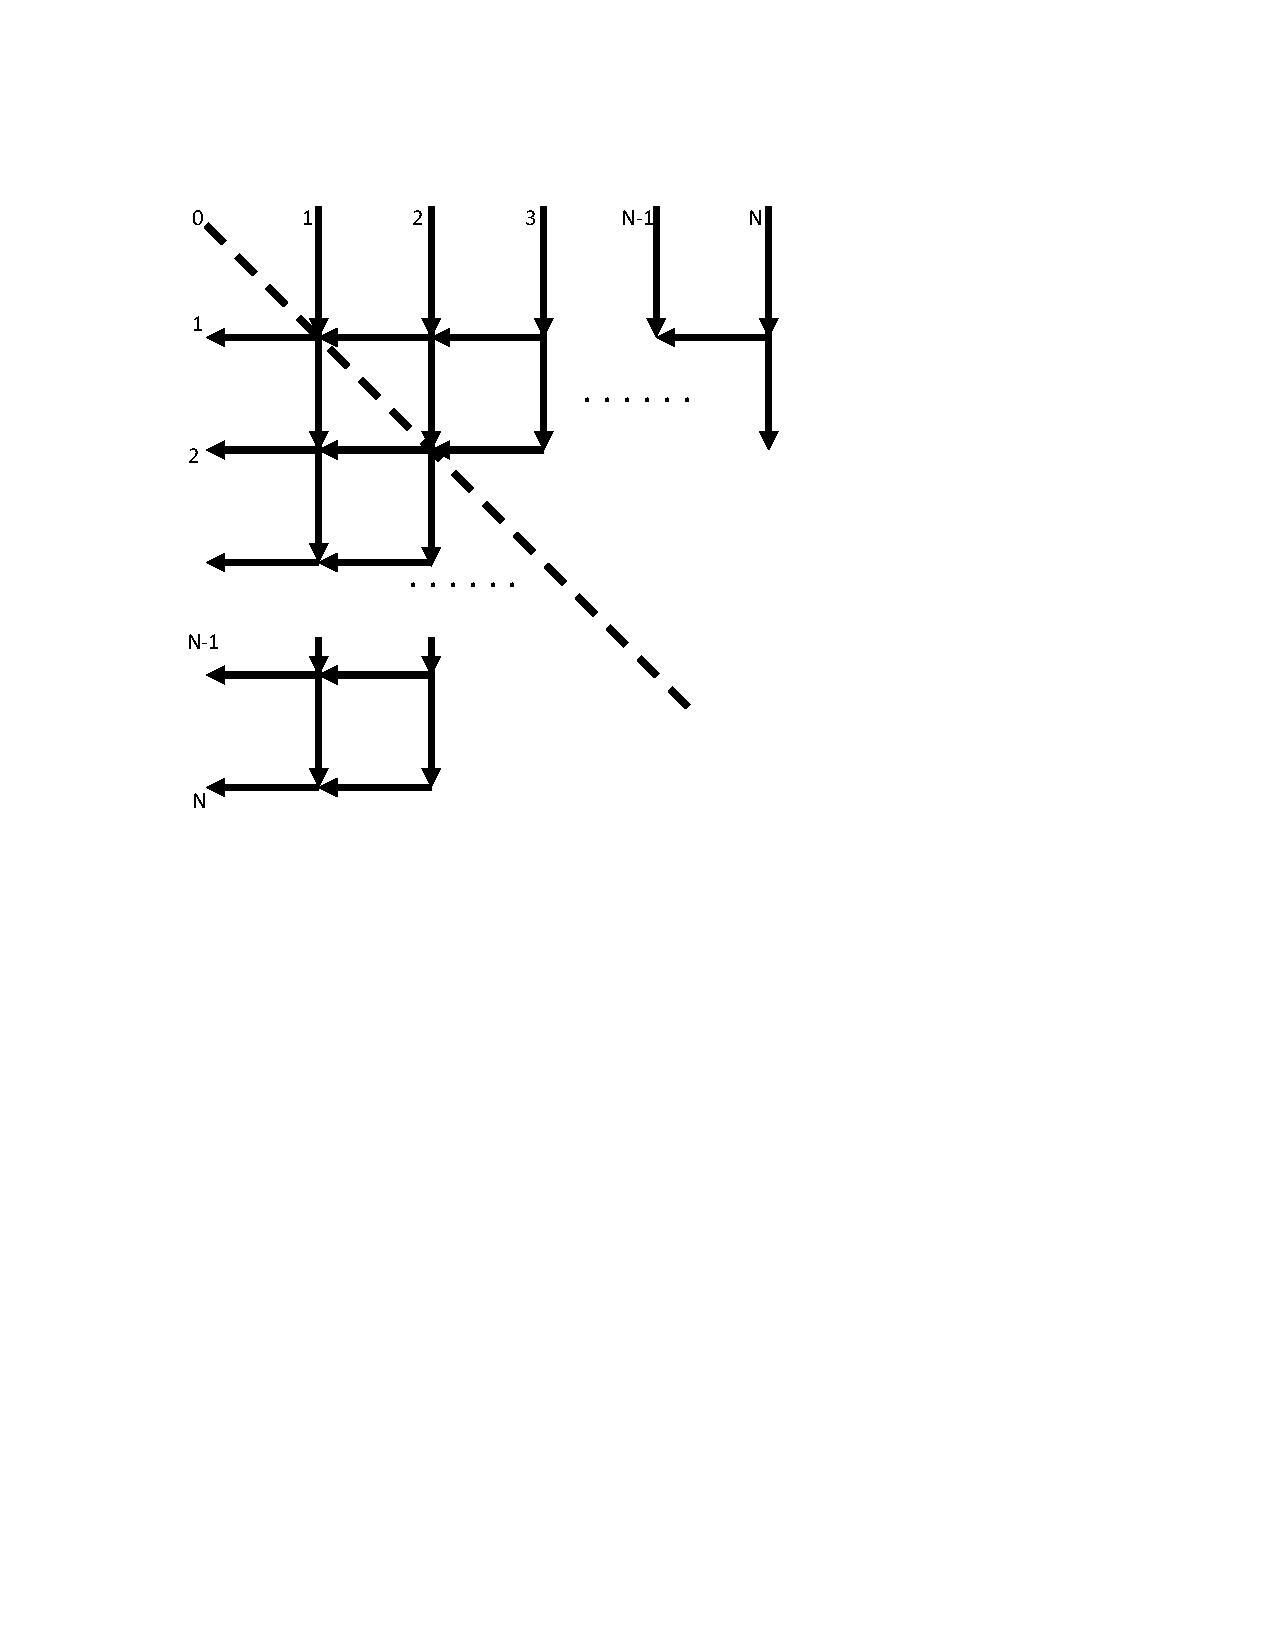 Figure. Counting paths